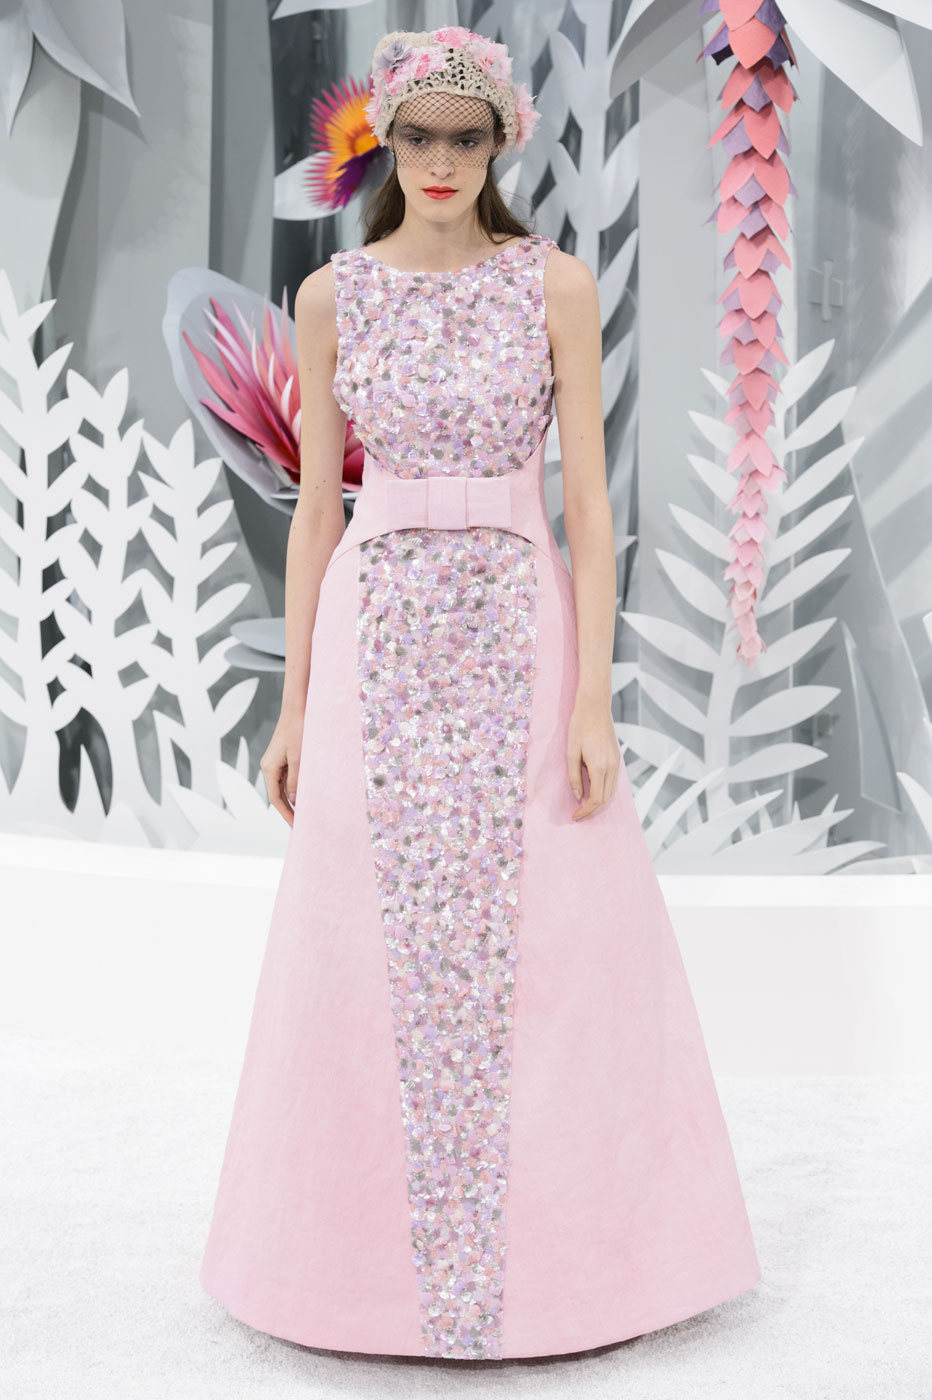 Chanel-fashion-runway-show-haute-couture-paris-spring-summer-2015-the-impression-131